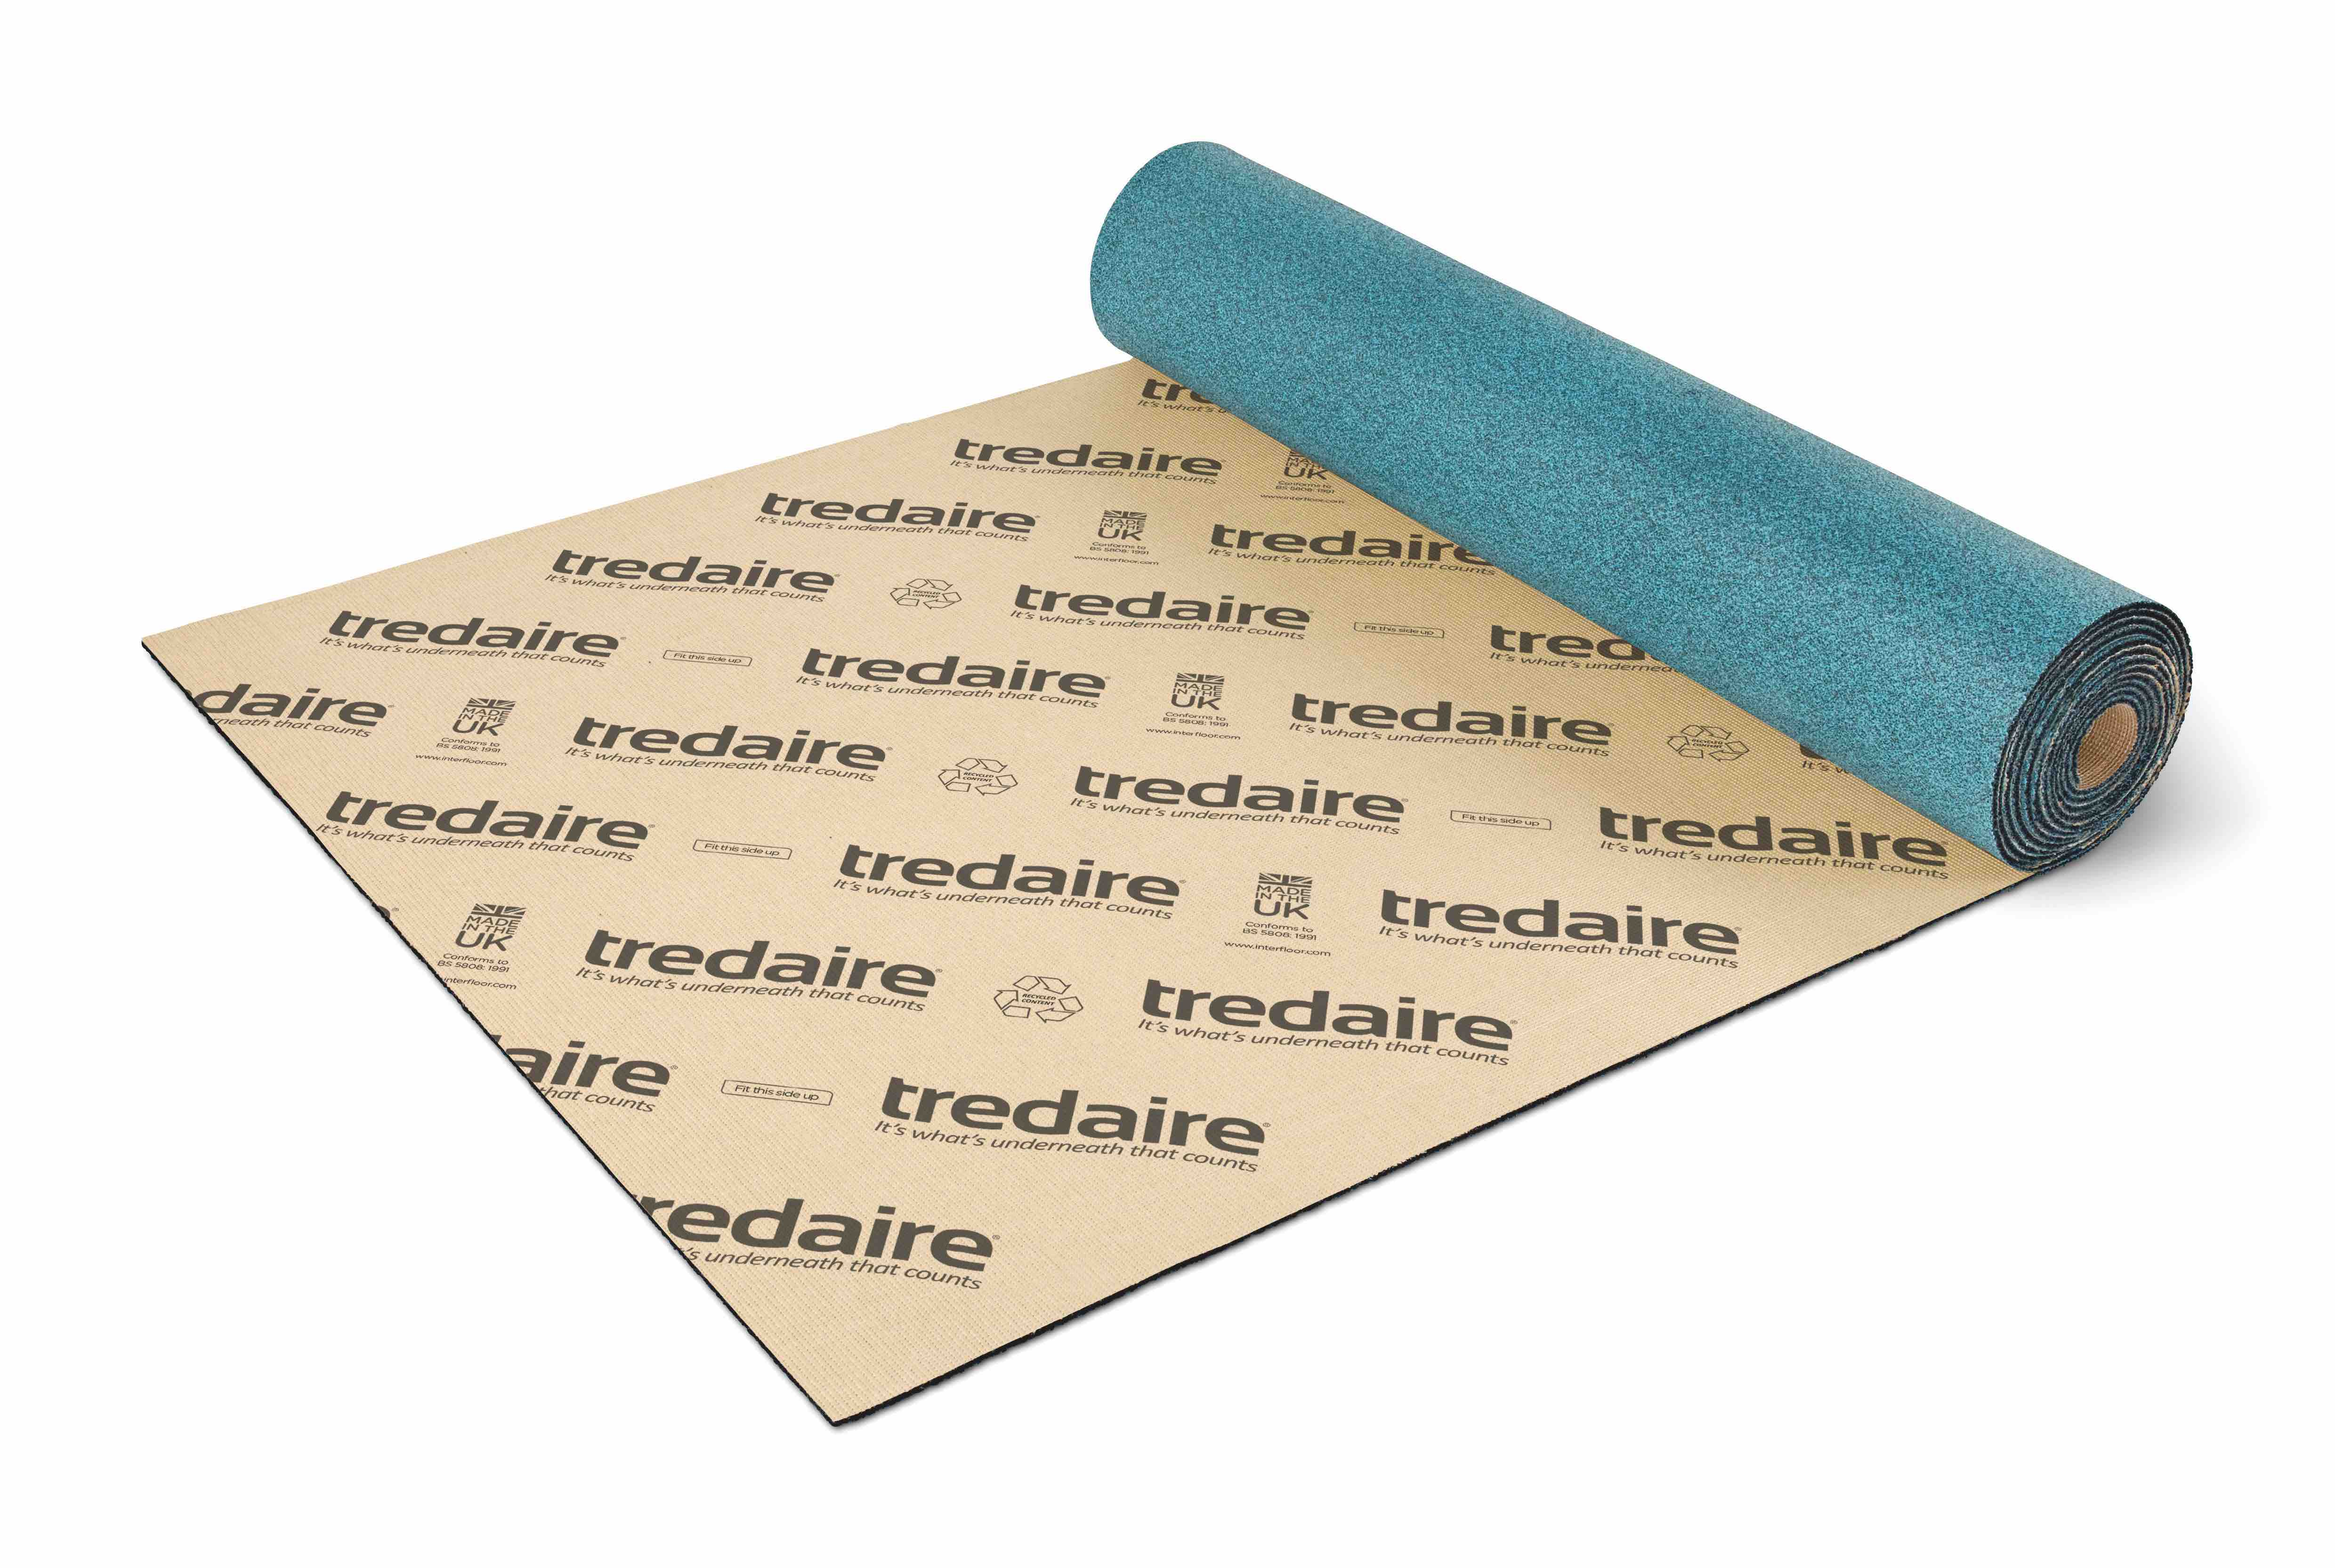 A roll of Tredaire Underlay on a white background